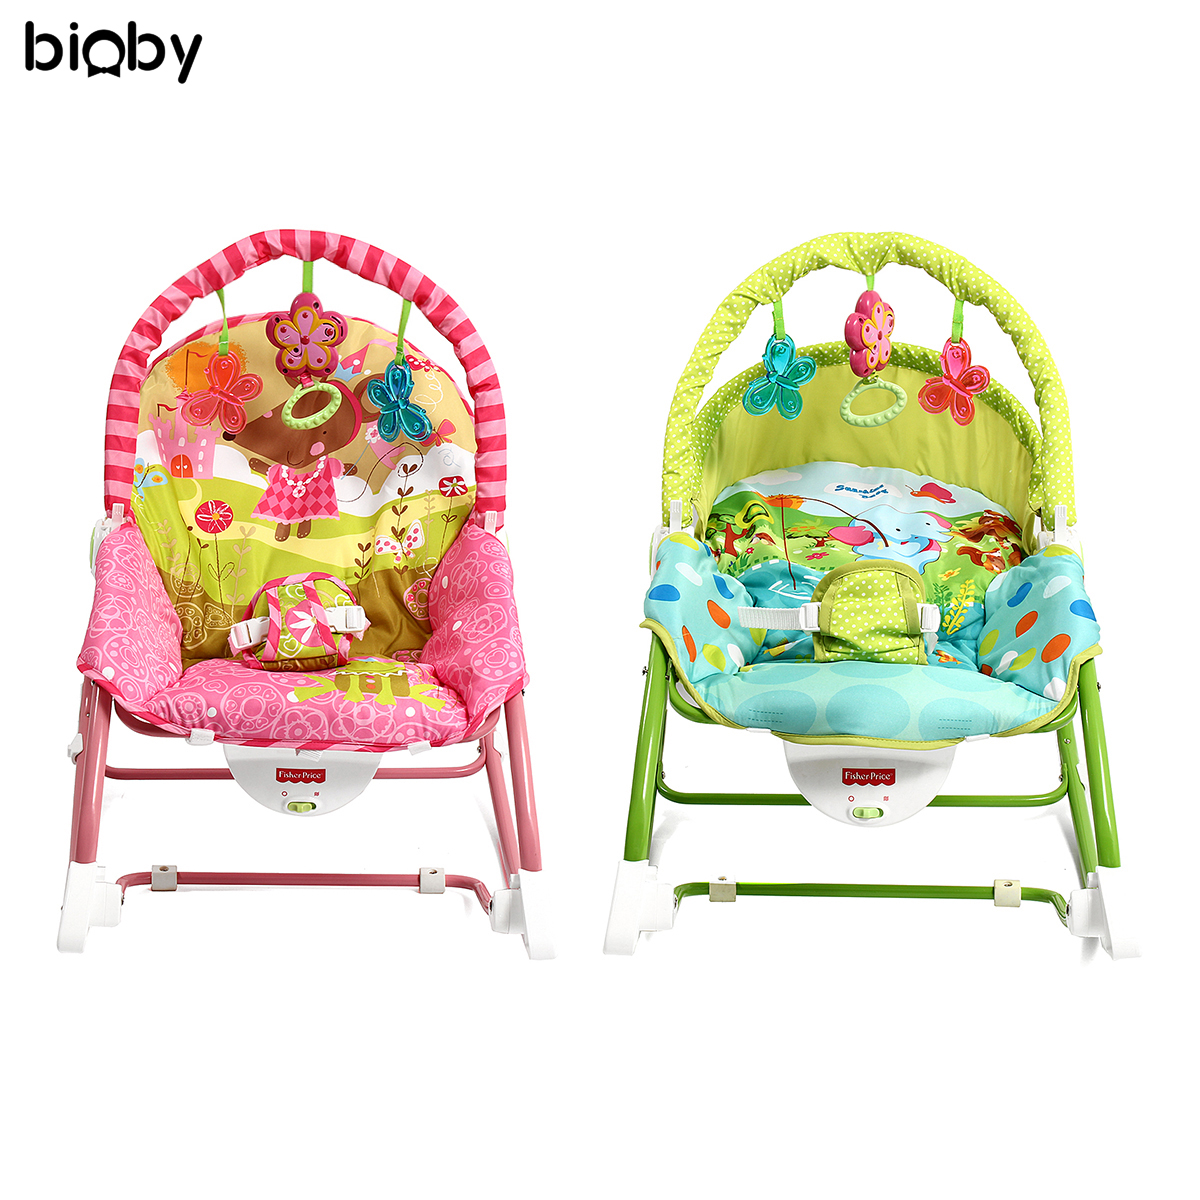 Bouncer Baby Us 43 7 49 Off Baby Infant Rocker Bouncer Chair Music Vibration Swing Toys Sleeper Cradle Seat Care Bed Portable Balance Baby Newborns Chair In